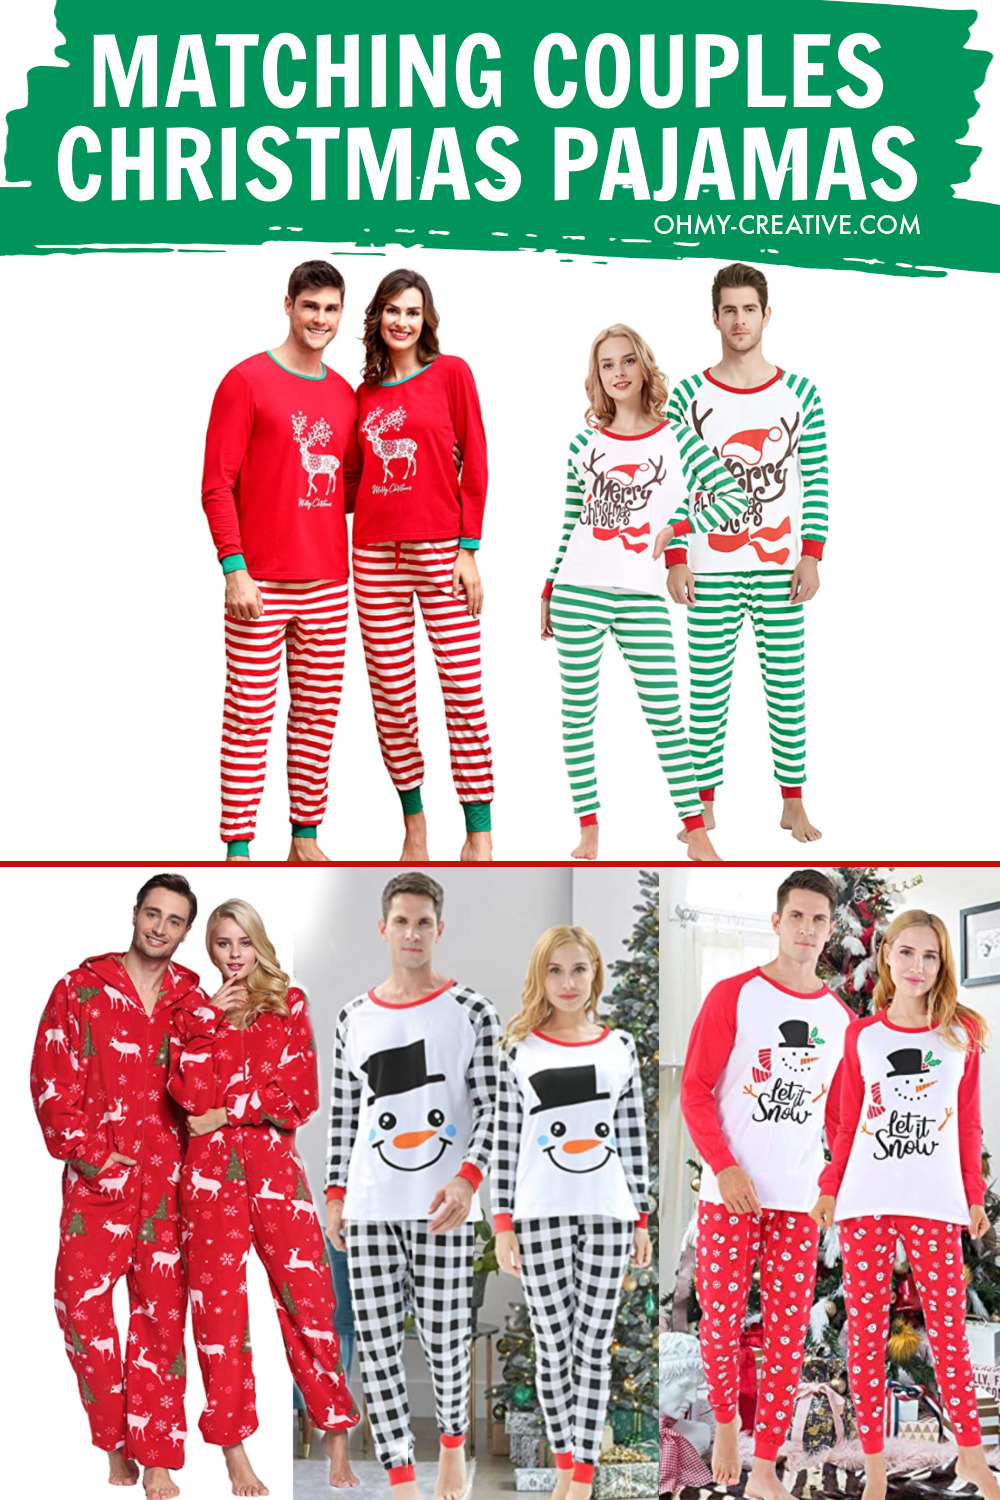 A collage of couples in different styles of matching Christmas Pajamas. Lots of styles to choose from.